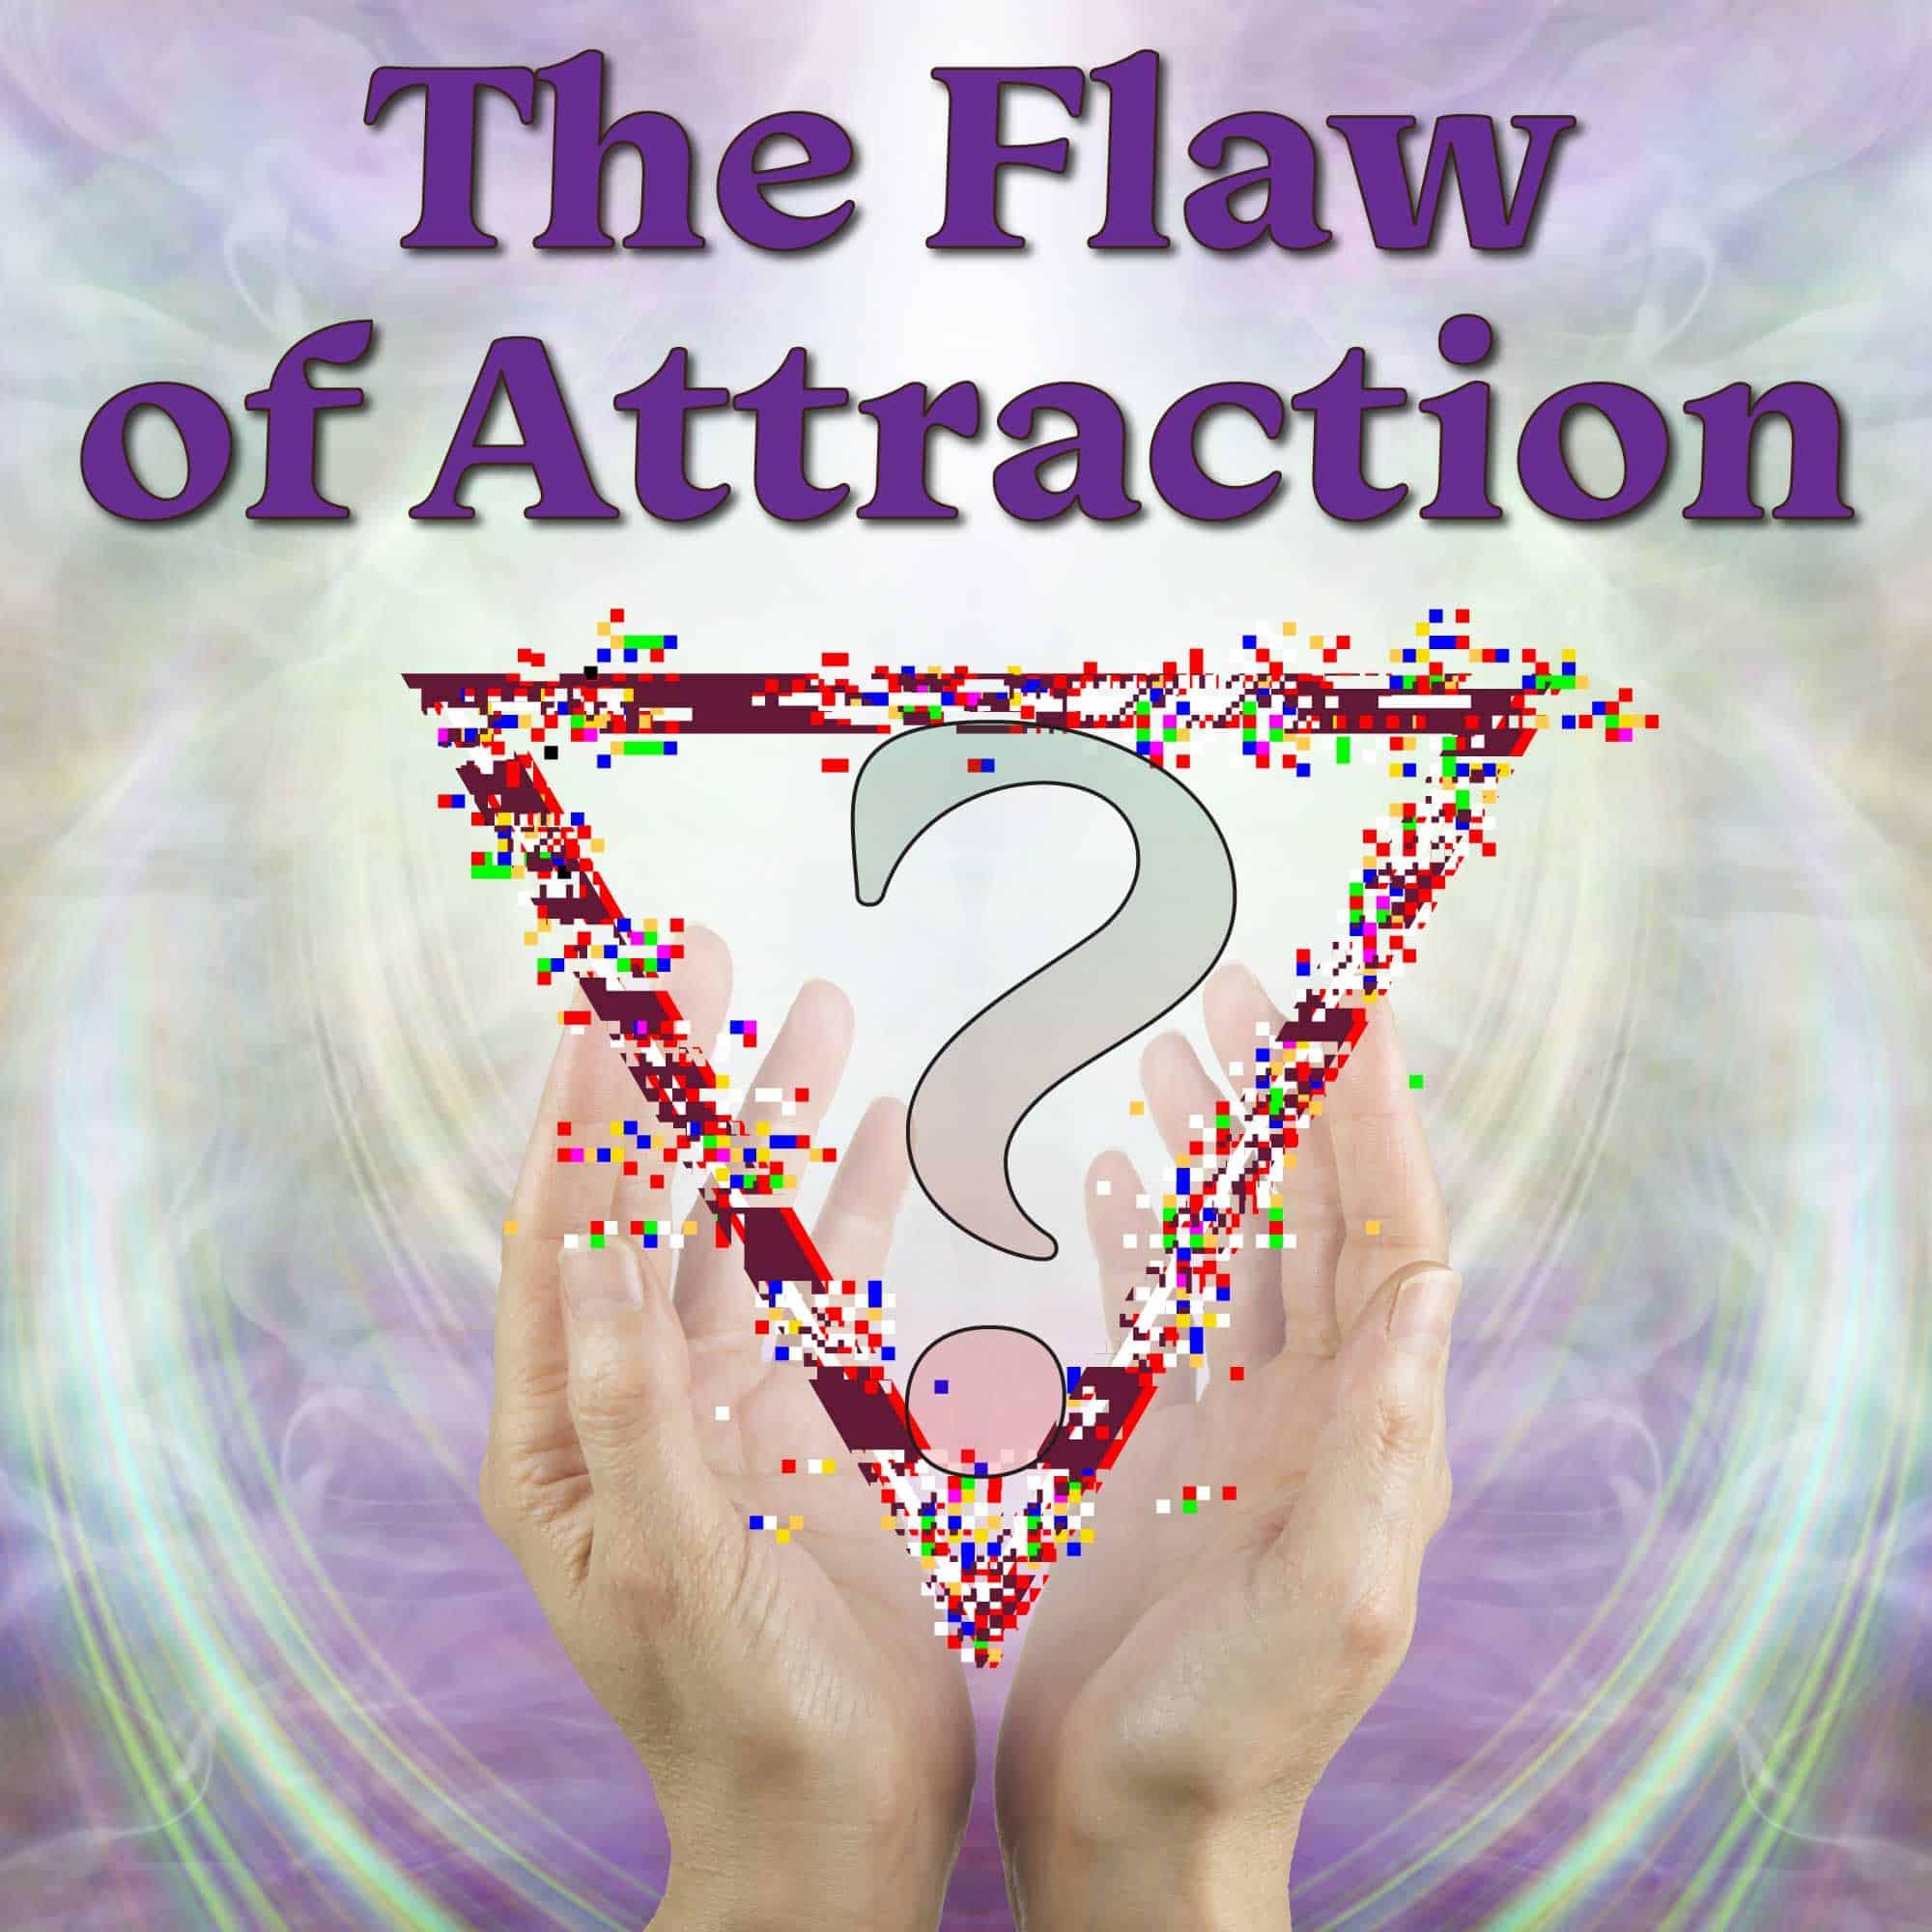 The Flaw of Attraction